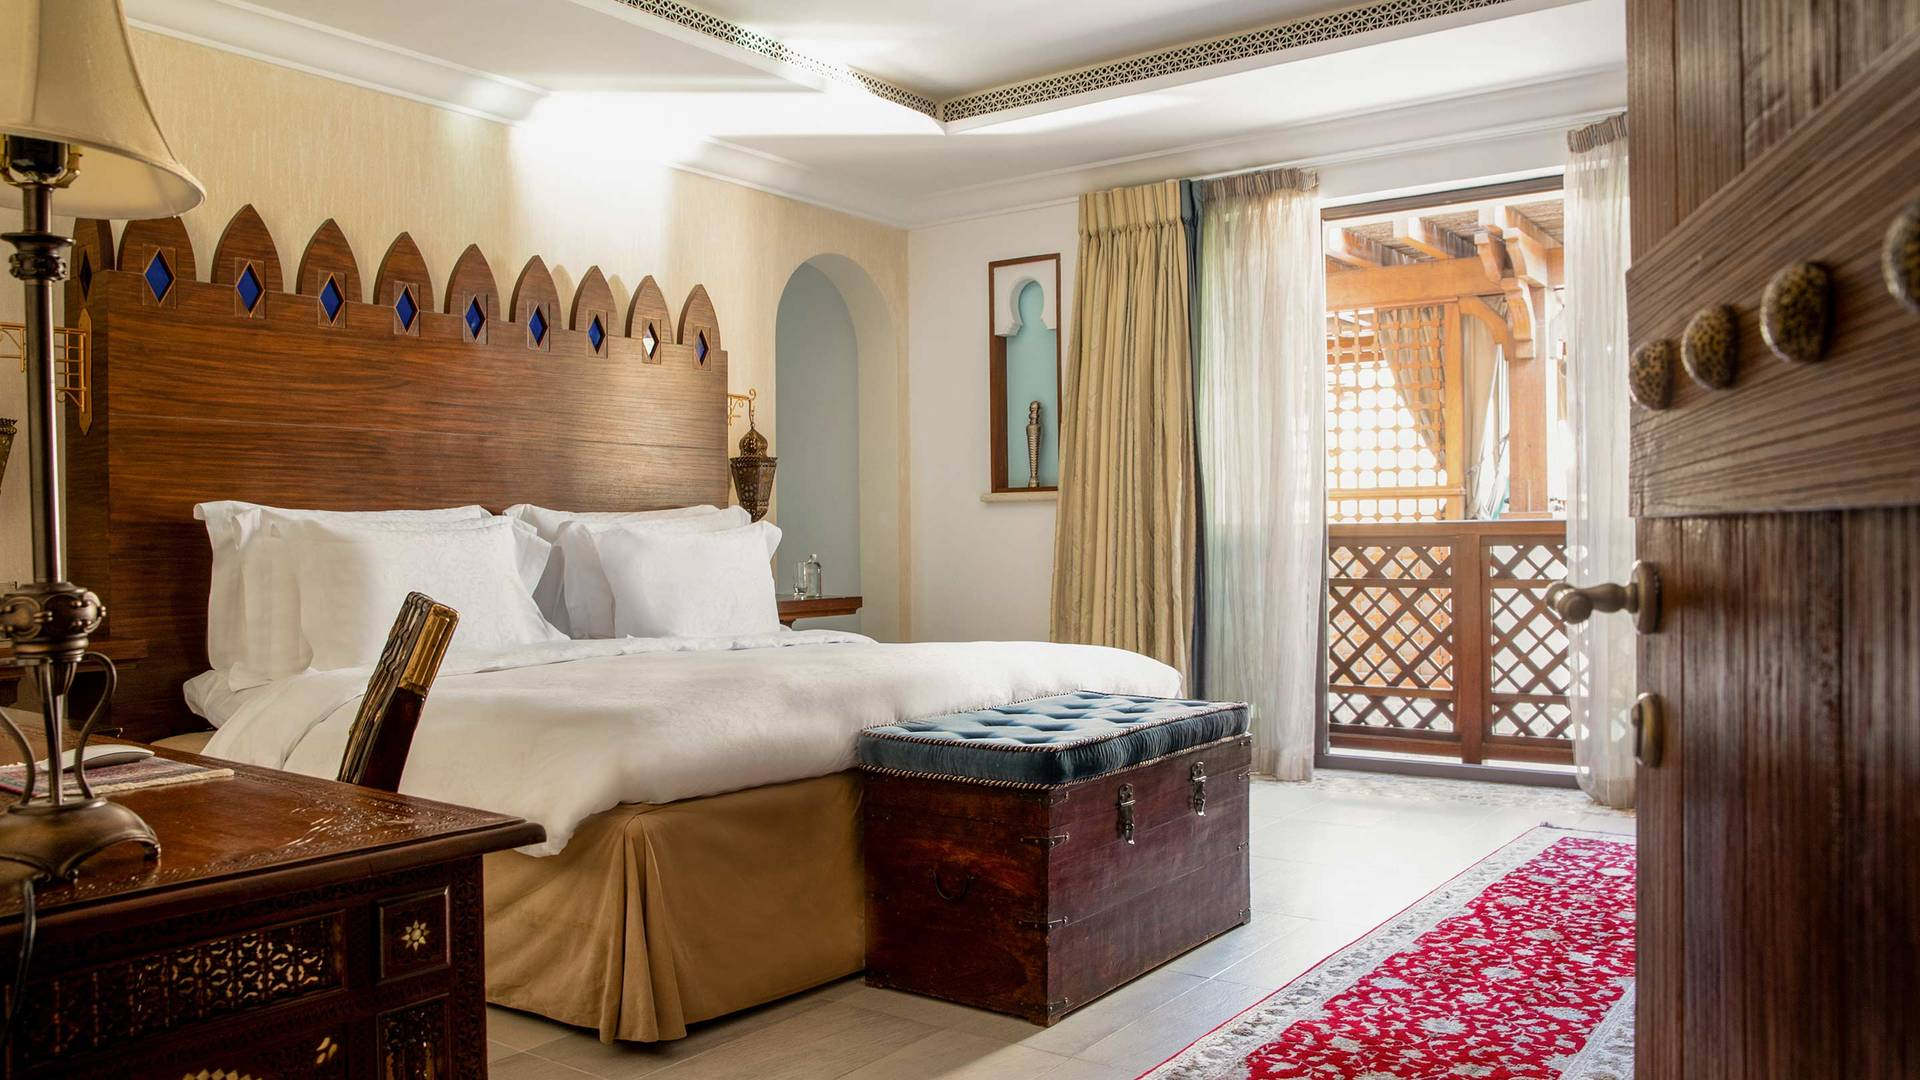 Jumeirah Dar Al Masyaf Malakiya two bedroom villa bedroom_16-9